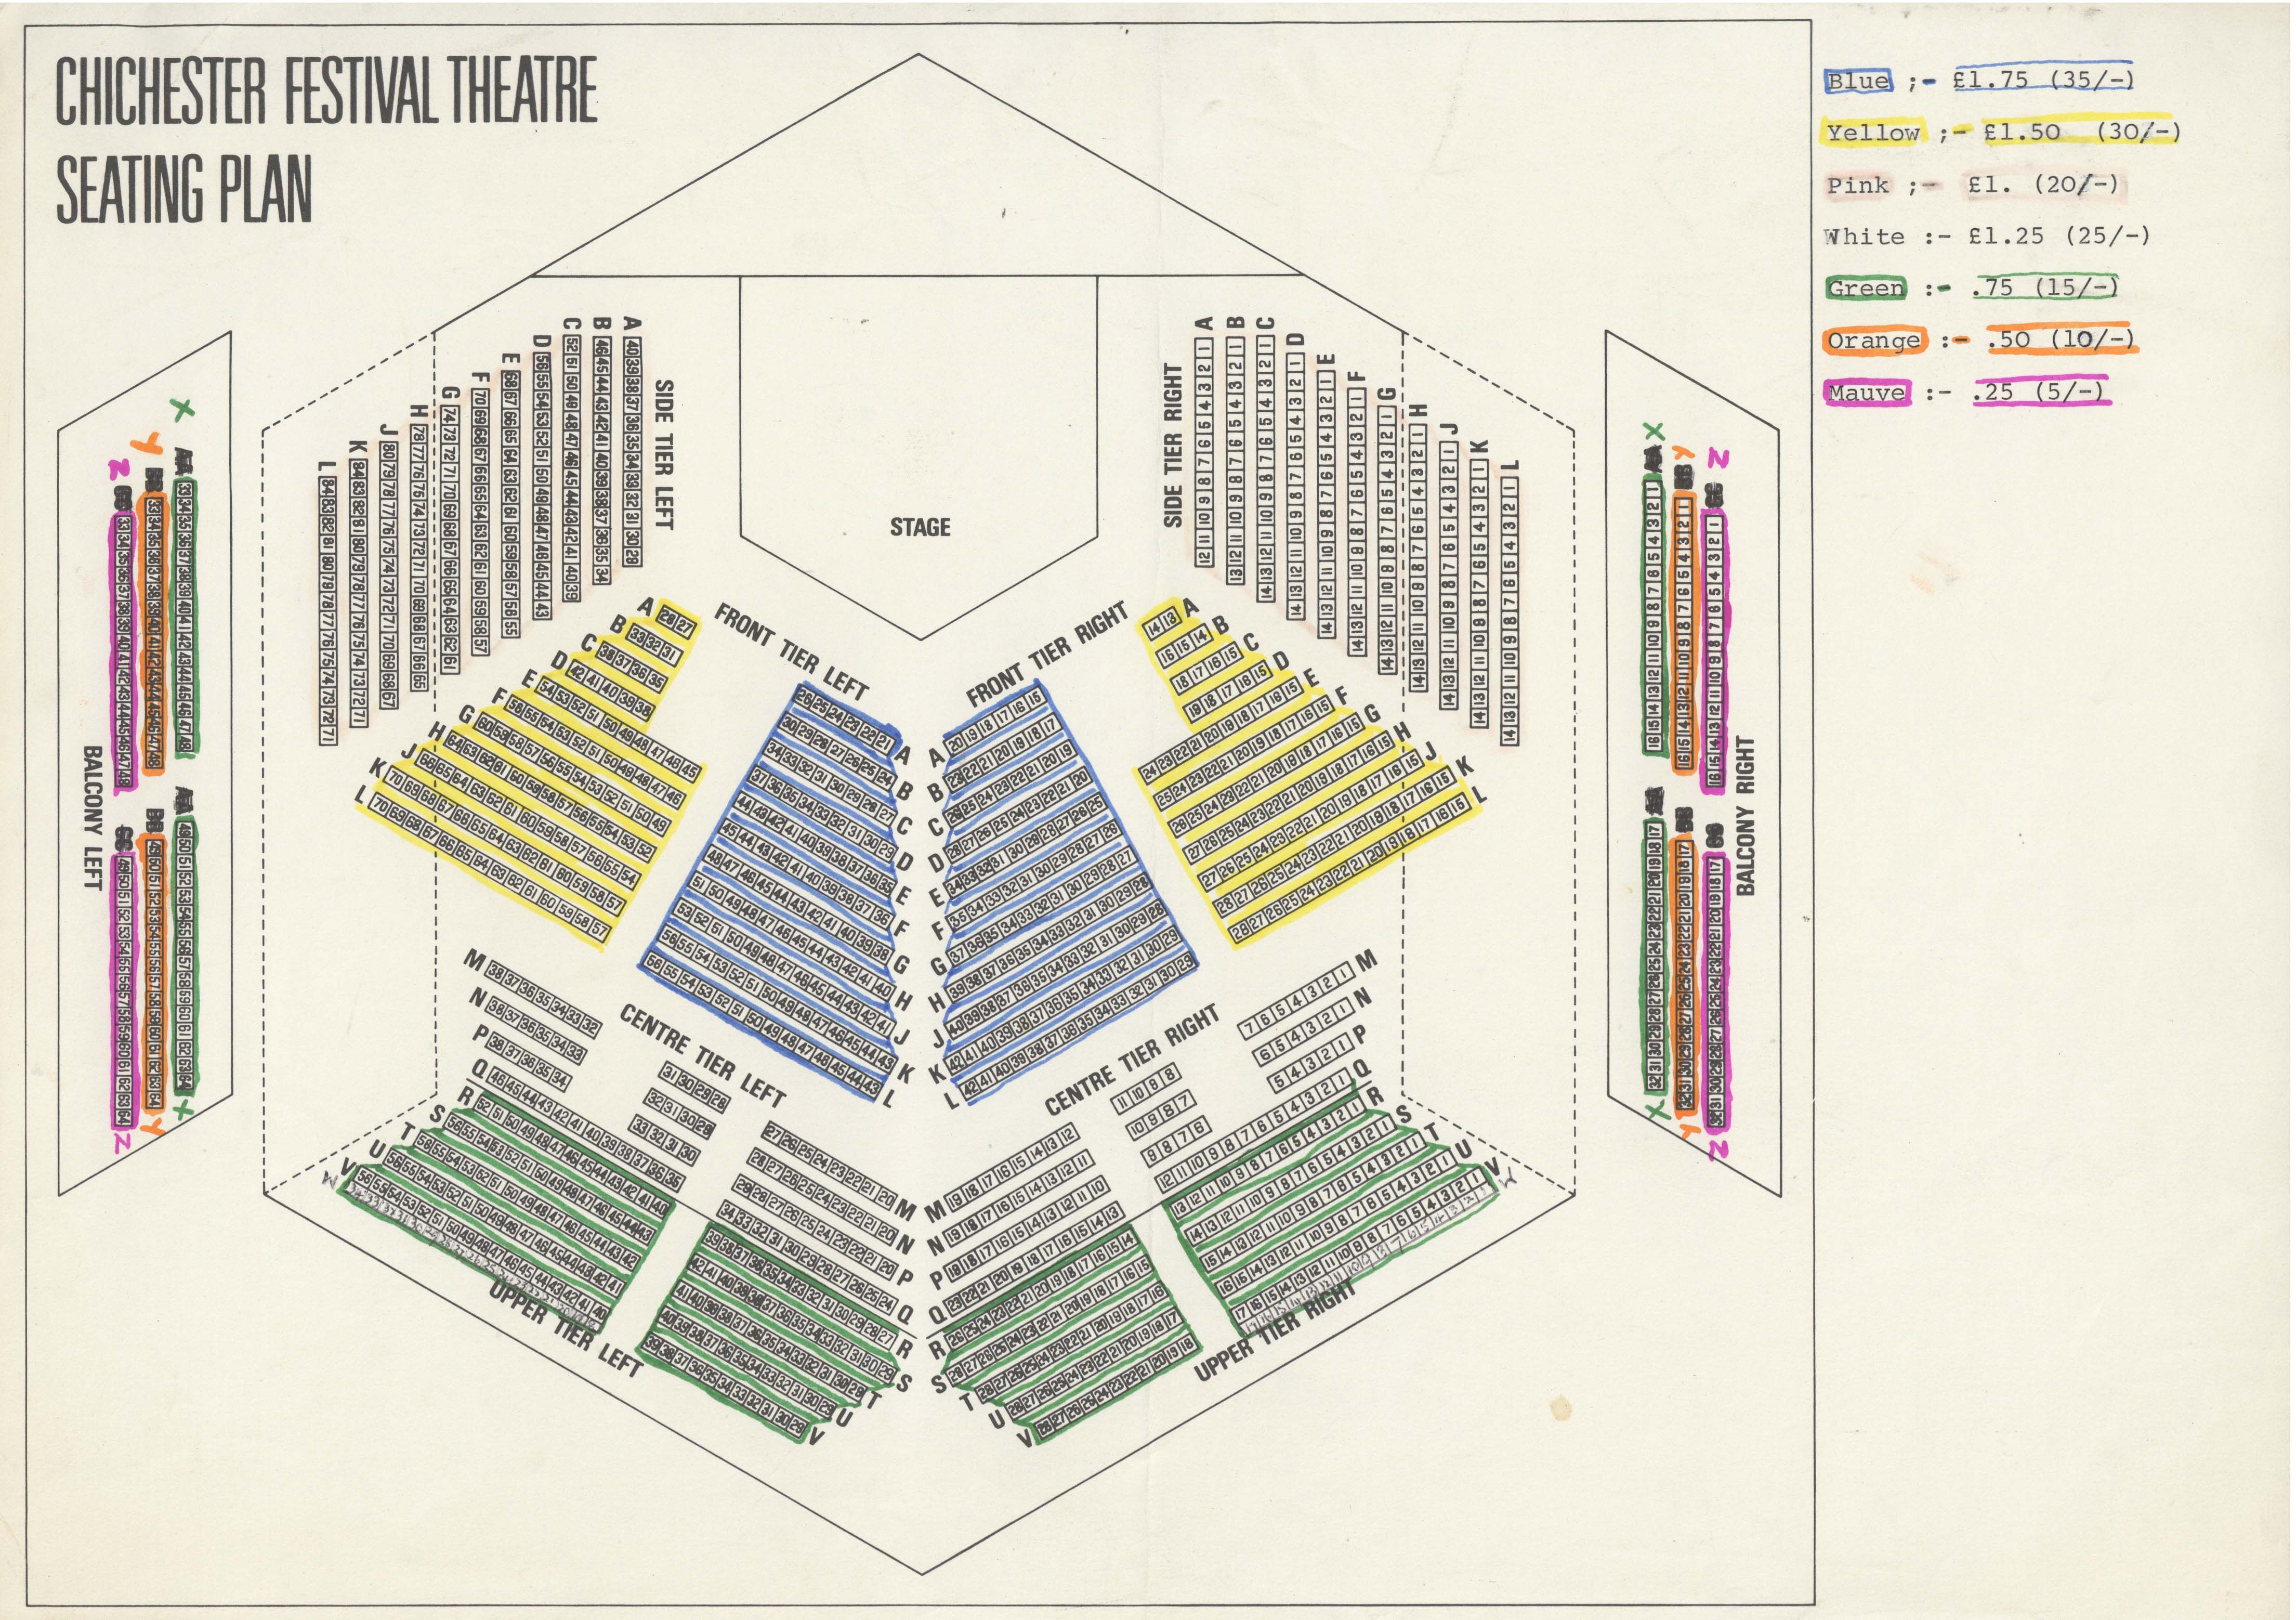 Room Layout Drawing Seating Plan For Festival Theatre Auditorium C 1972